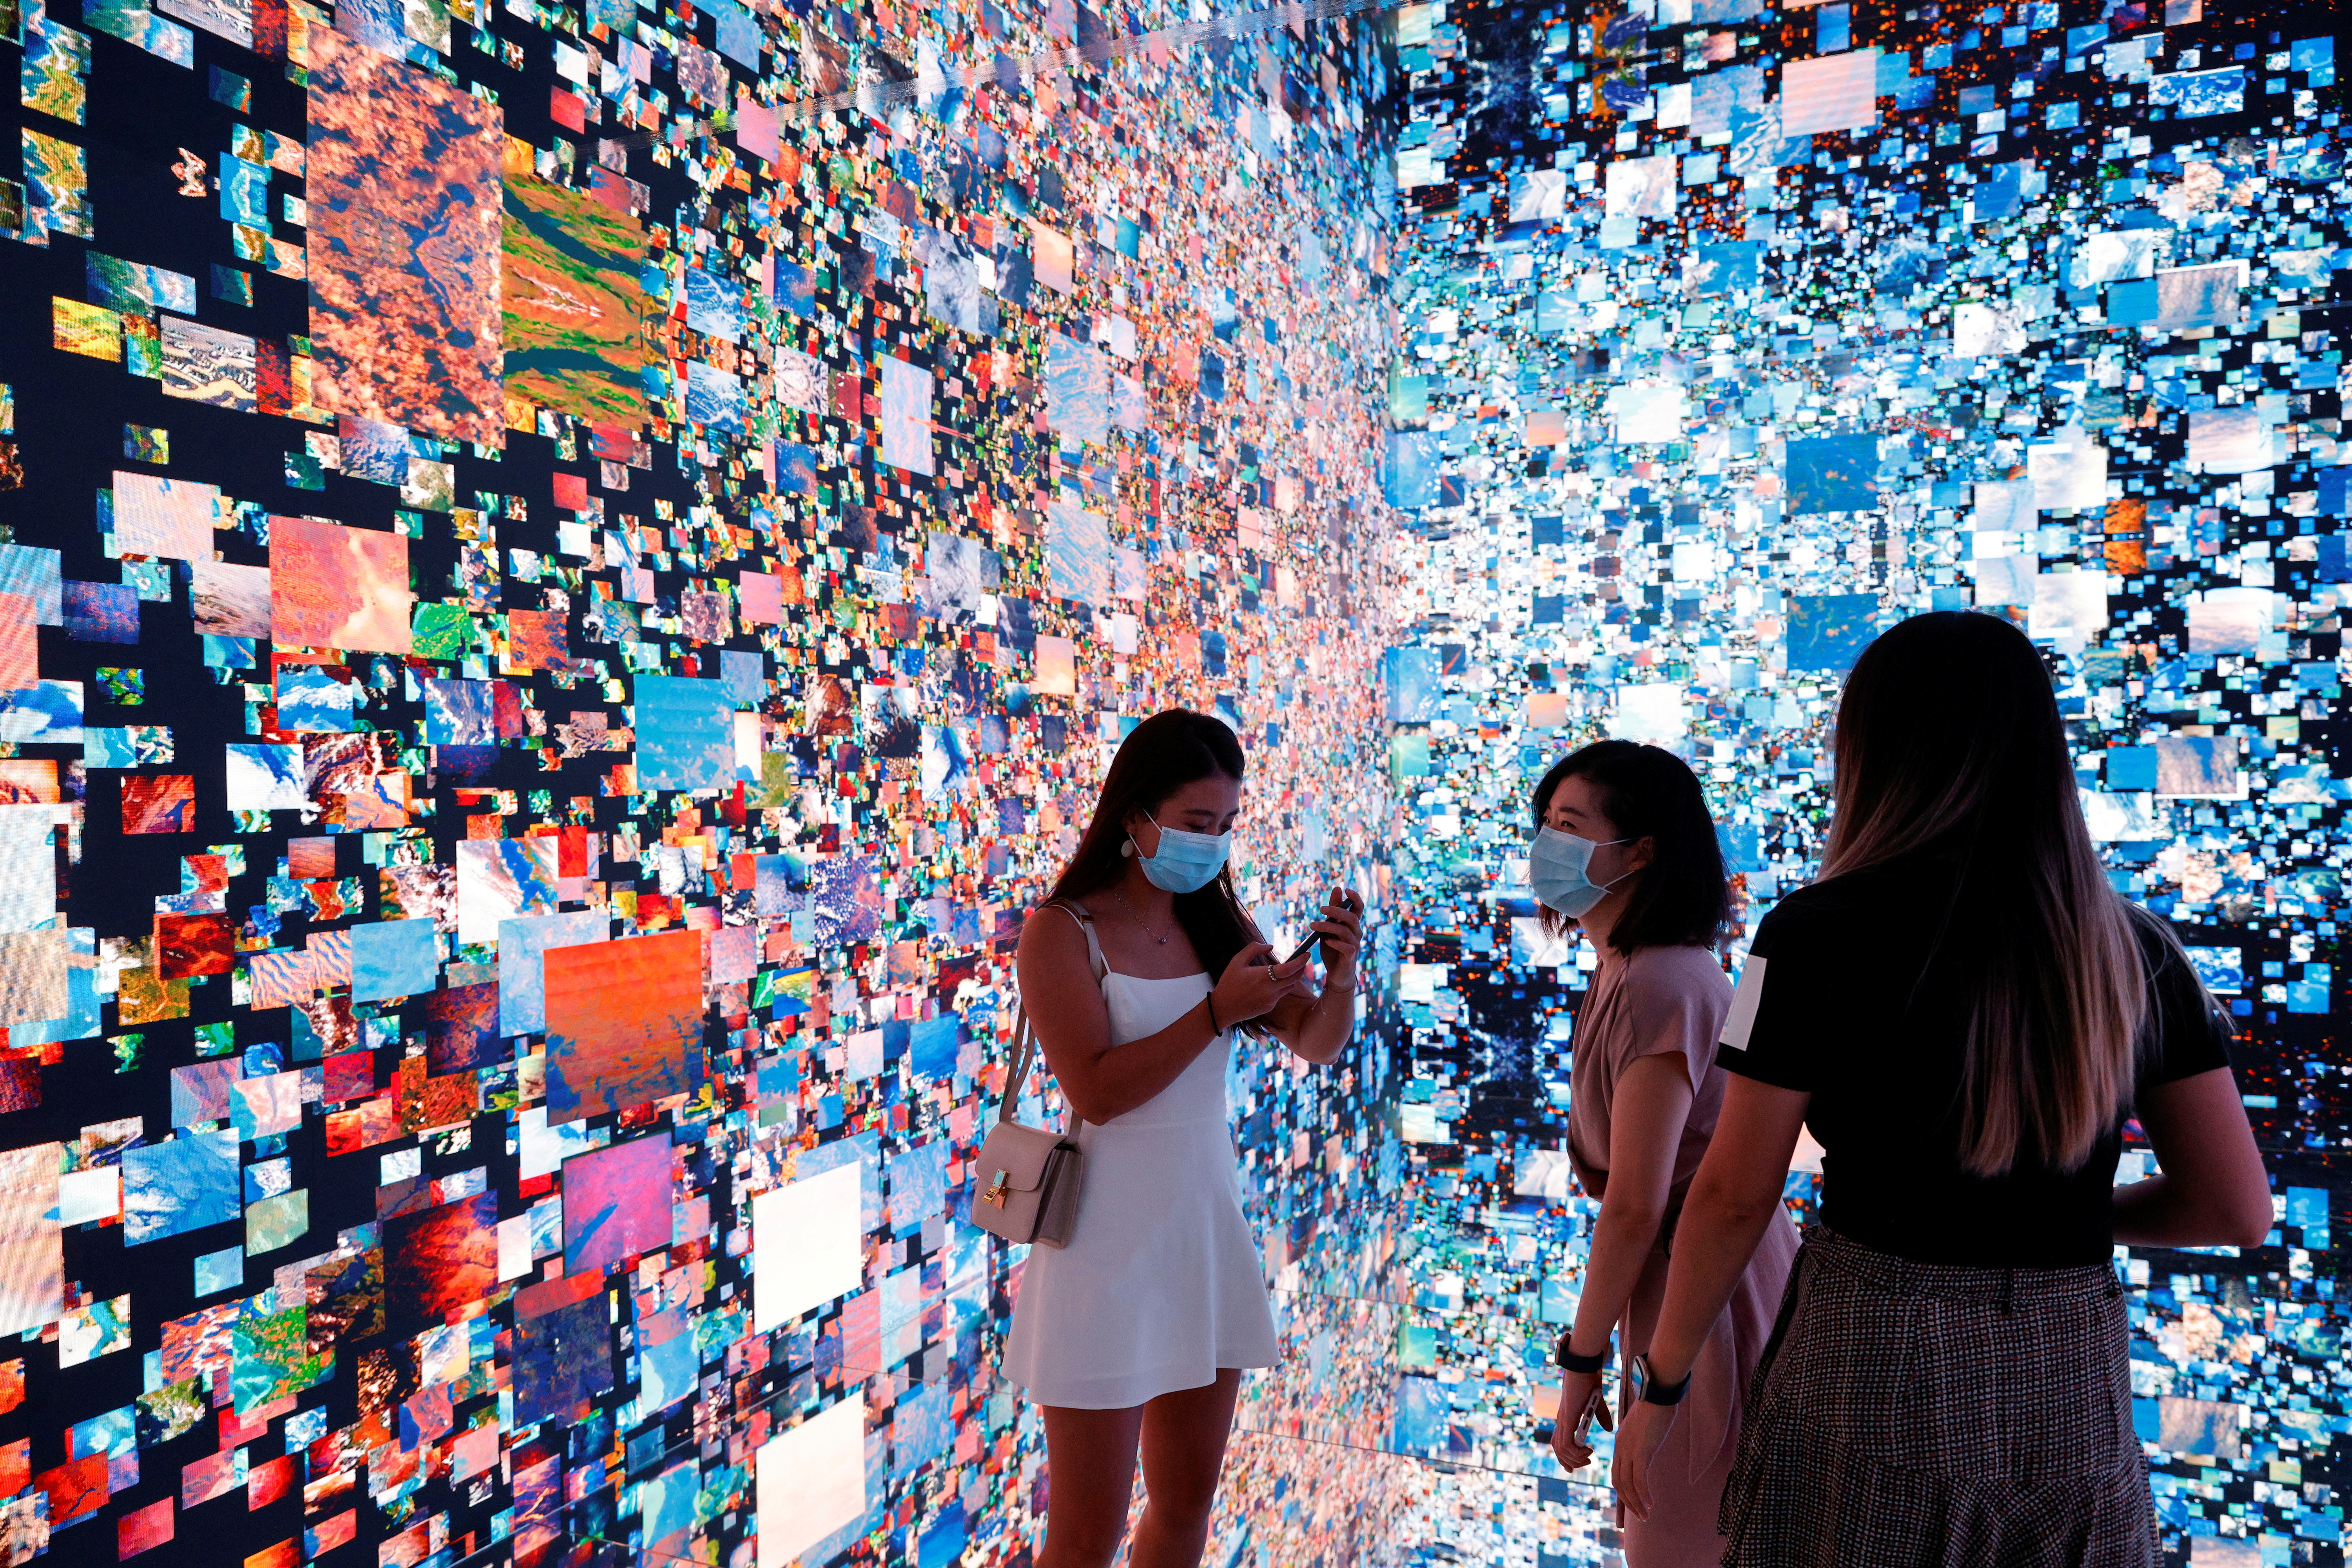 Visitors are pictured in front of an immersive art installation titled